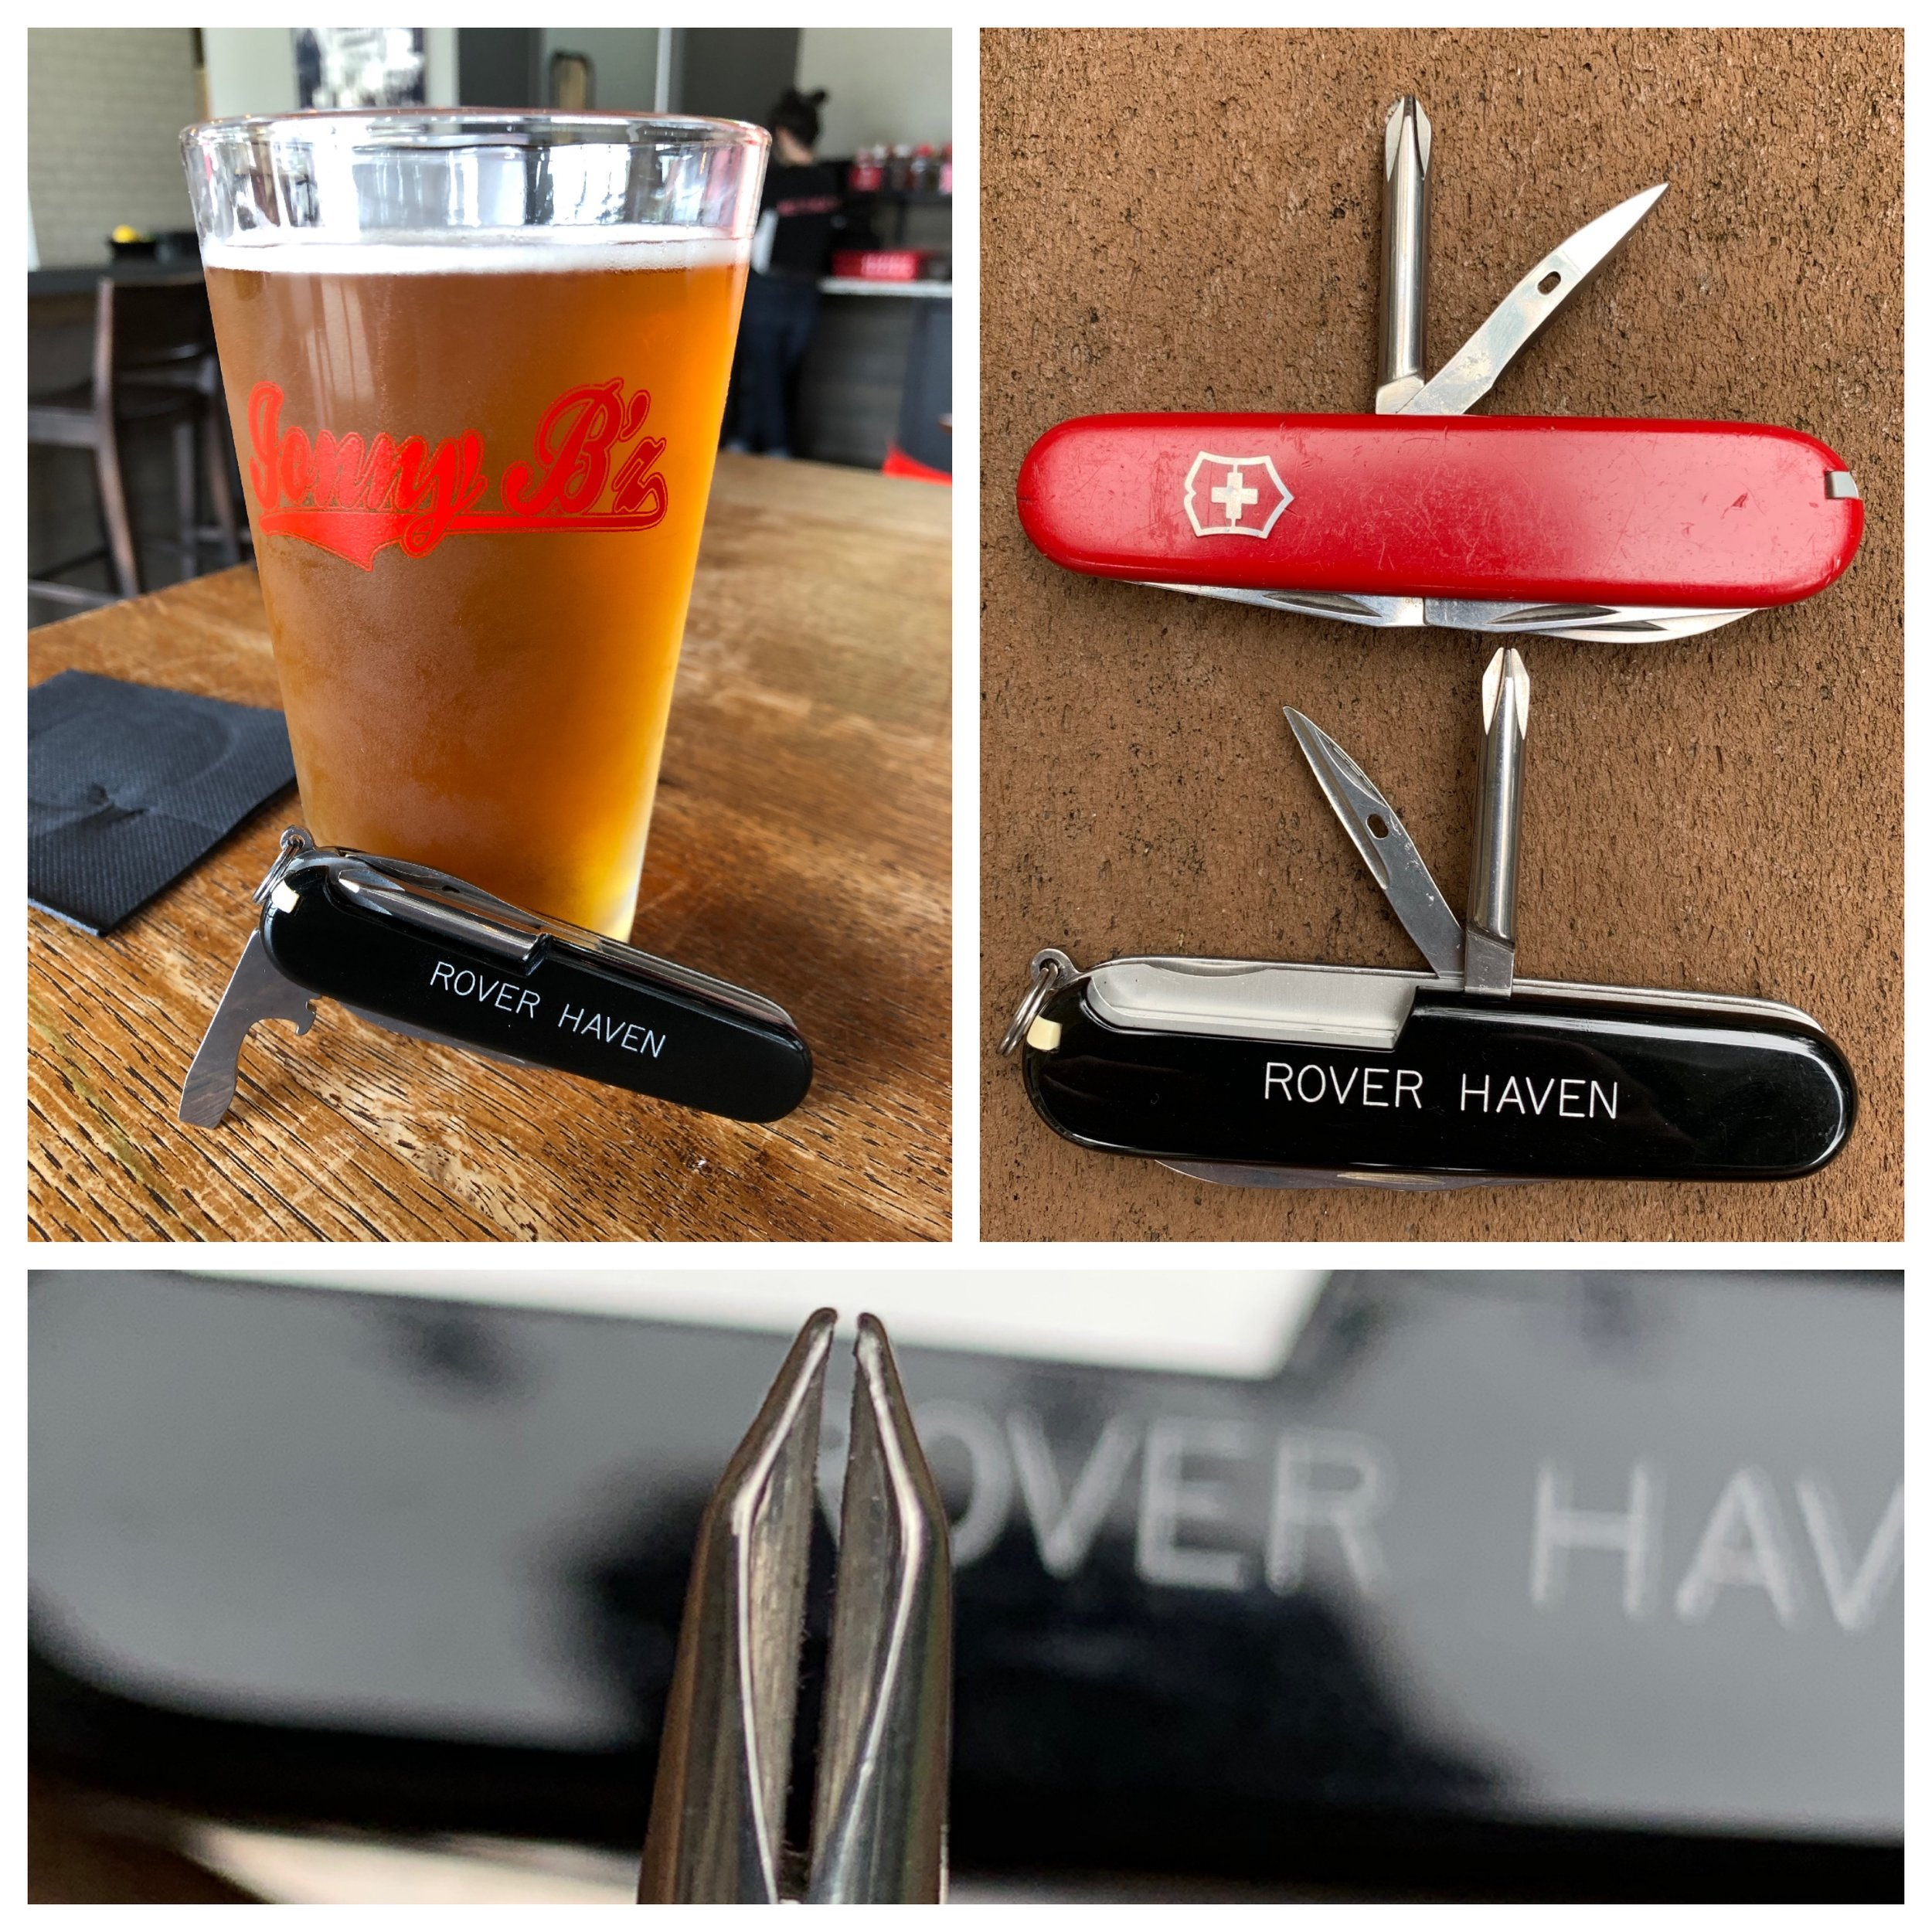 I filed off the keyring attachment point on my old high school Tinker decades ago. Note the can key feature on its Phillip's head screwdriver.